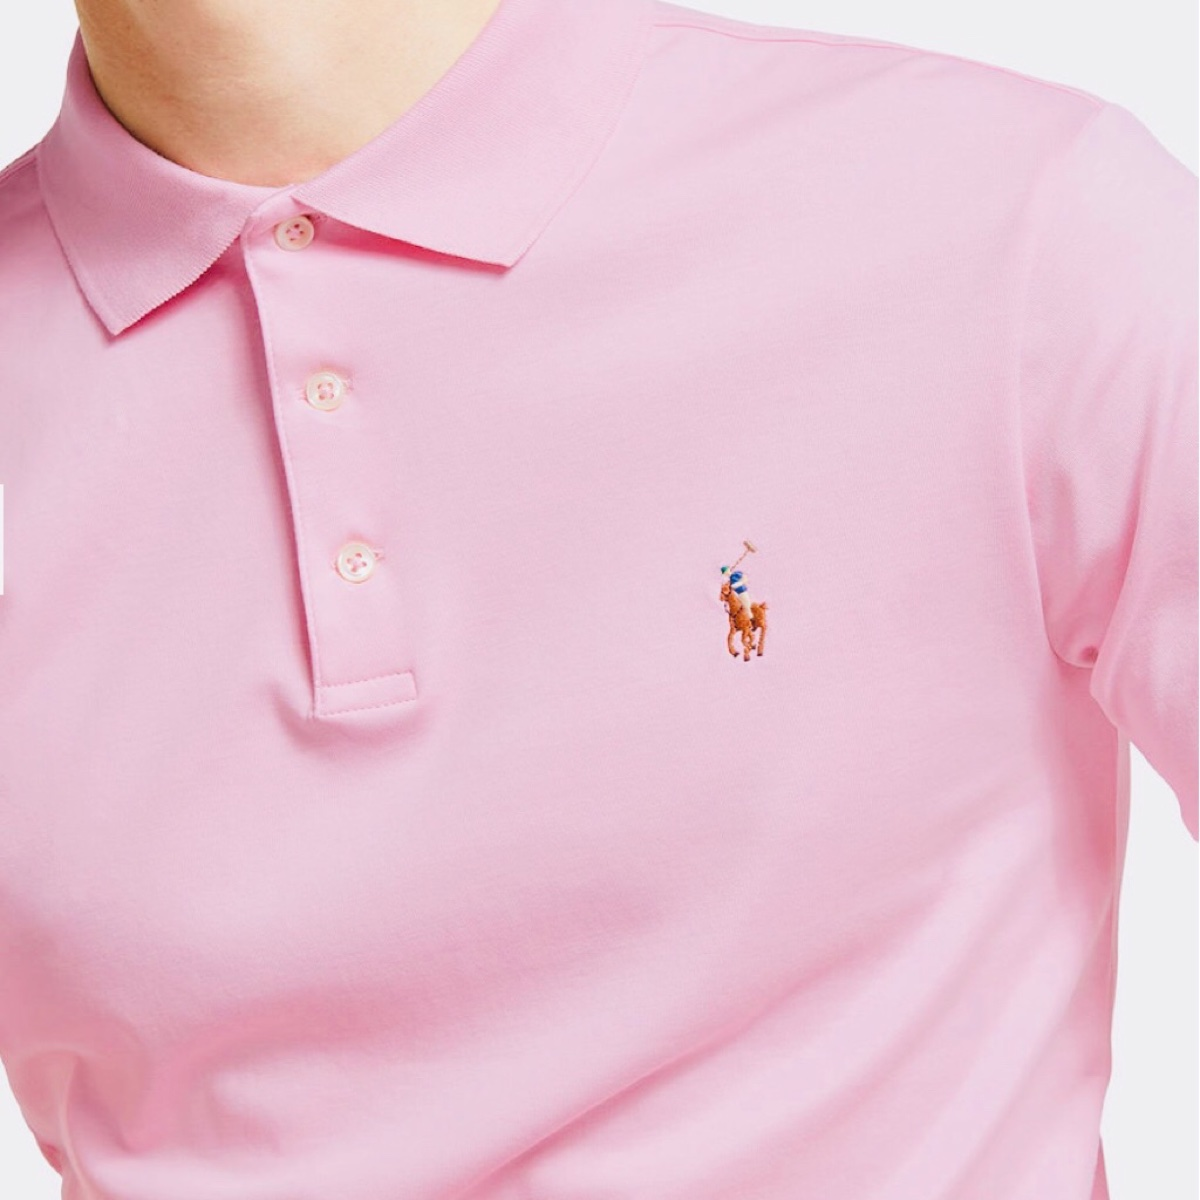 Polo Ralph Lauren Slim Fit Interlock Polo Shirt,